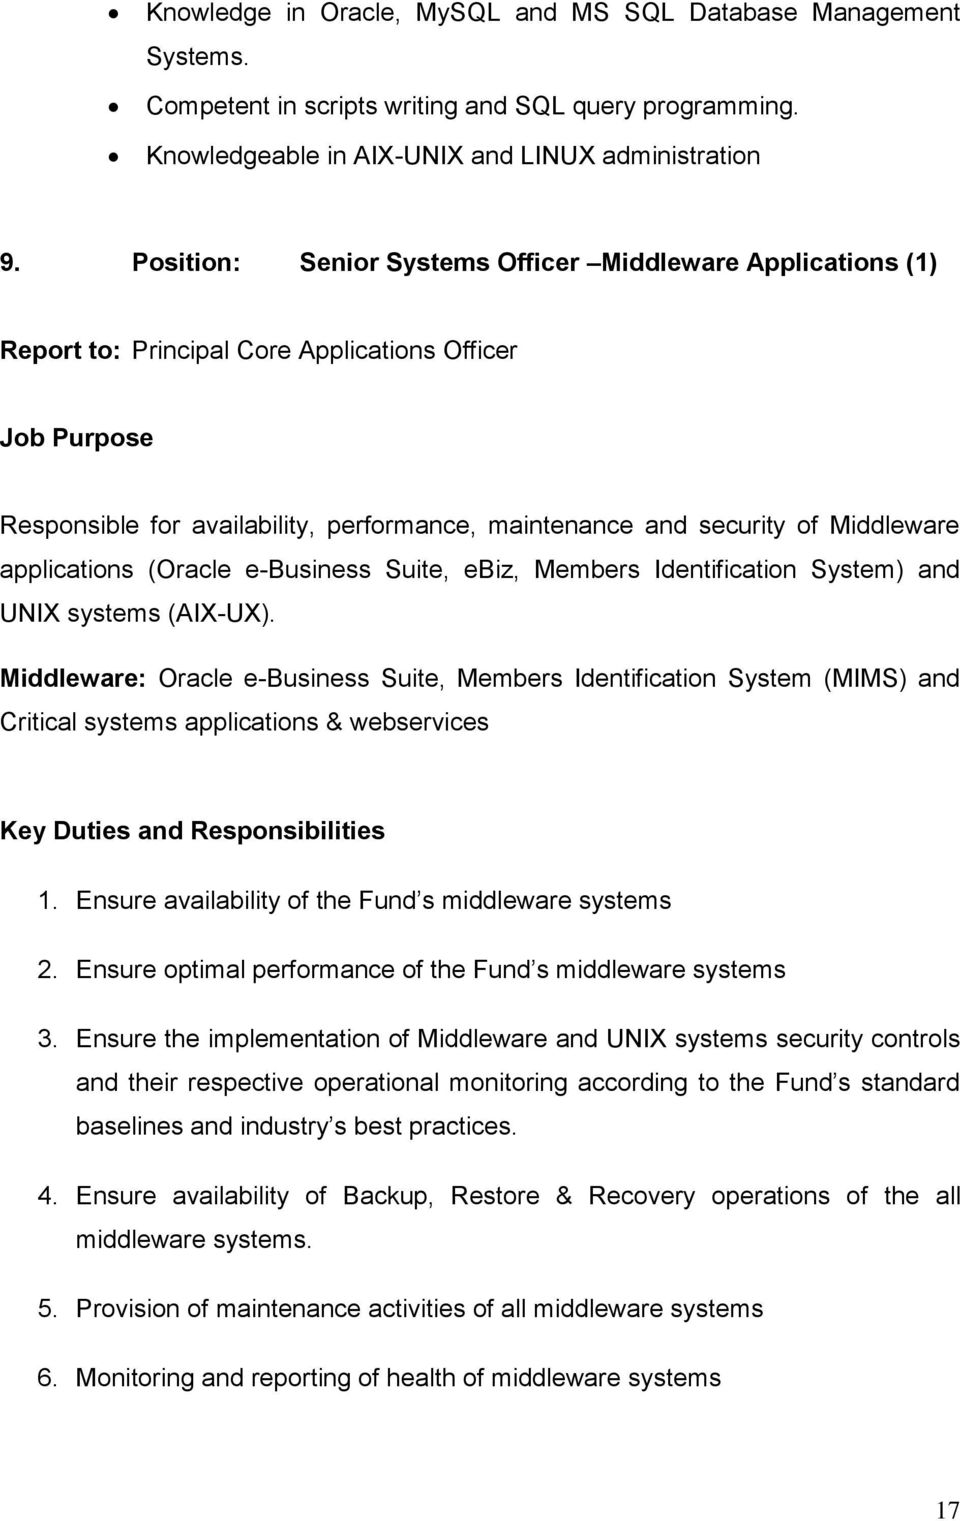 Middleware applications (Oracle e-business Suite, ebiz, Members Identification System) and UNIX systems (AIX-UX).